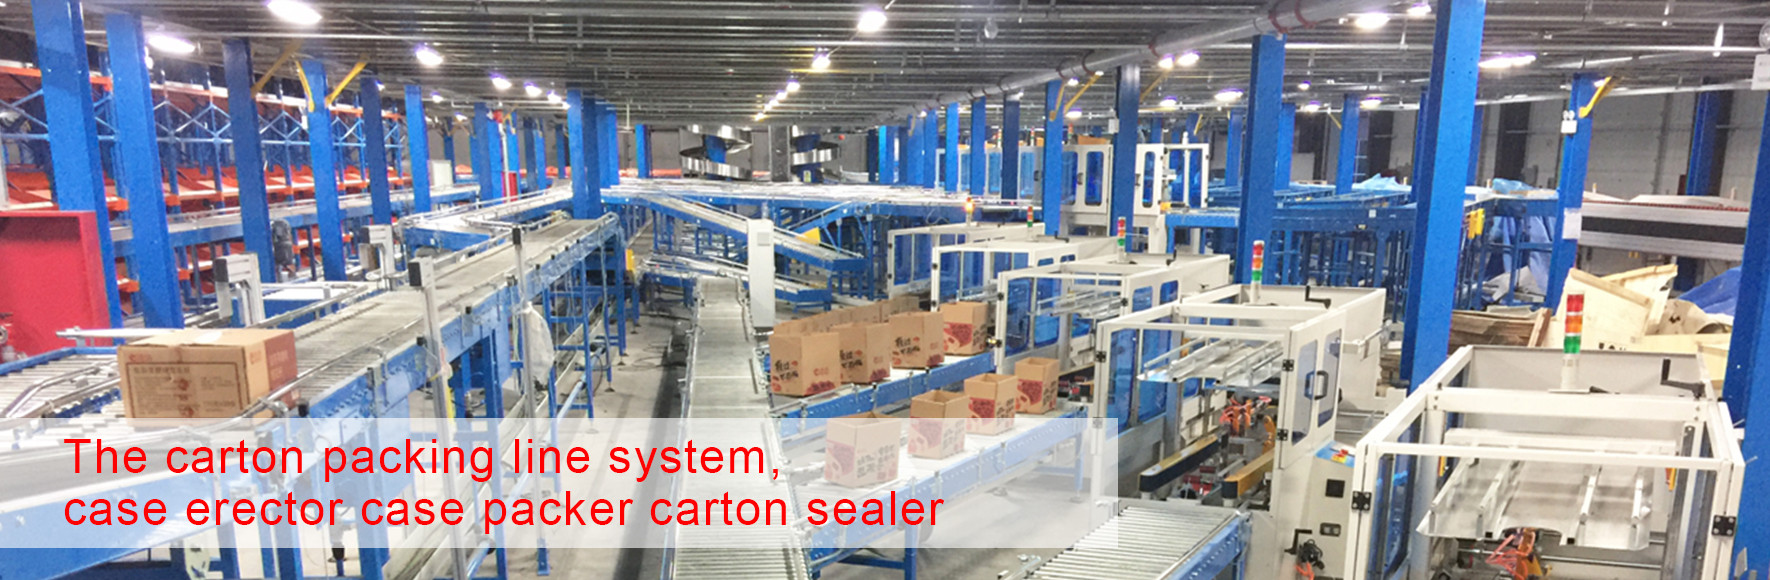 xutian pack gurkipack sunpack Bestpack youngsunpack case erector carton sealing machine case packer